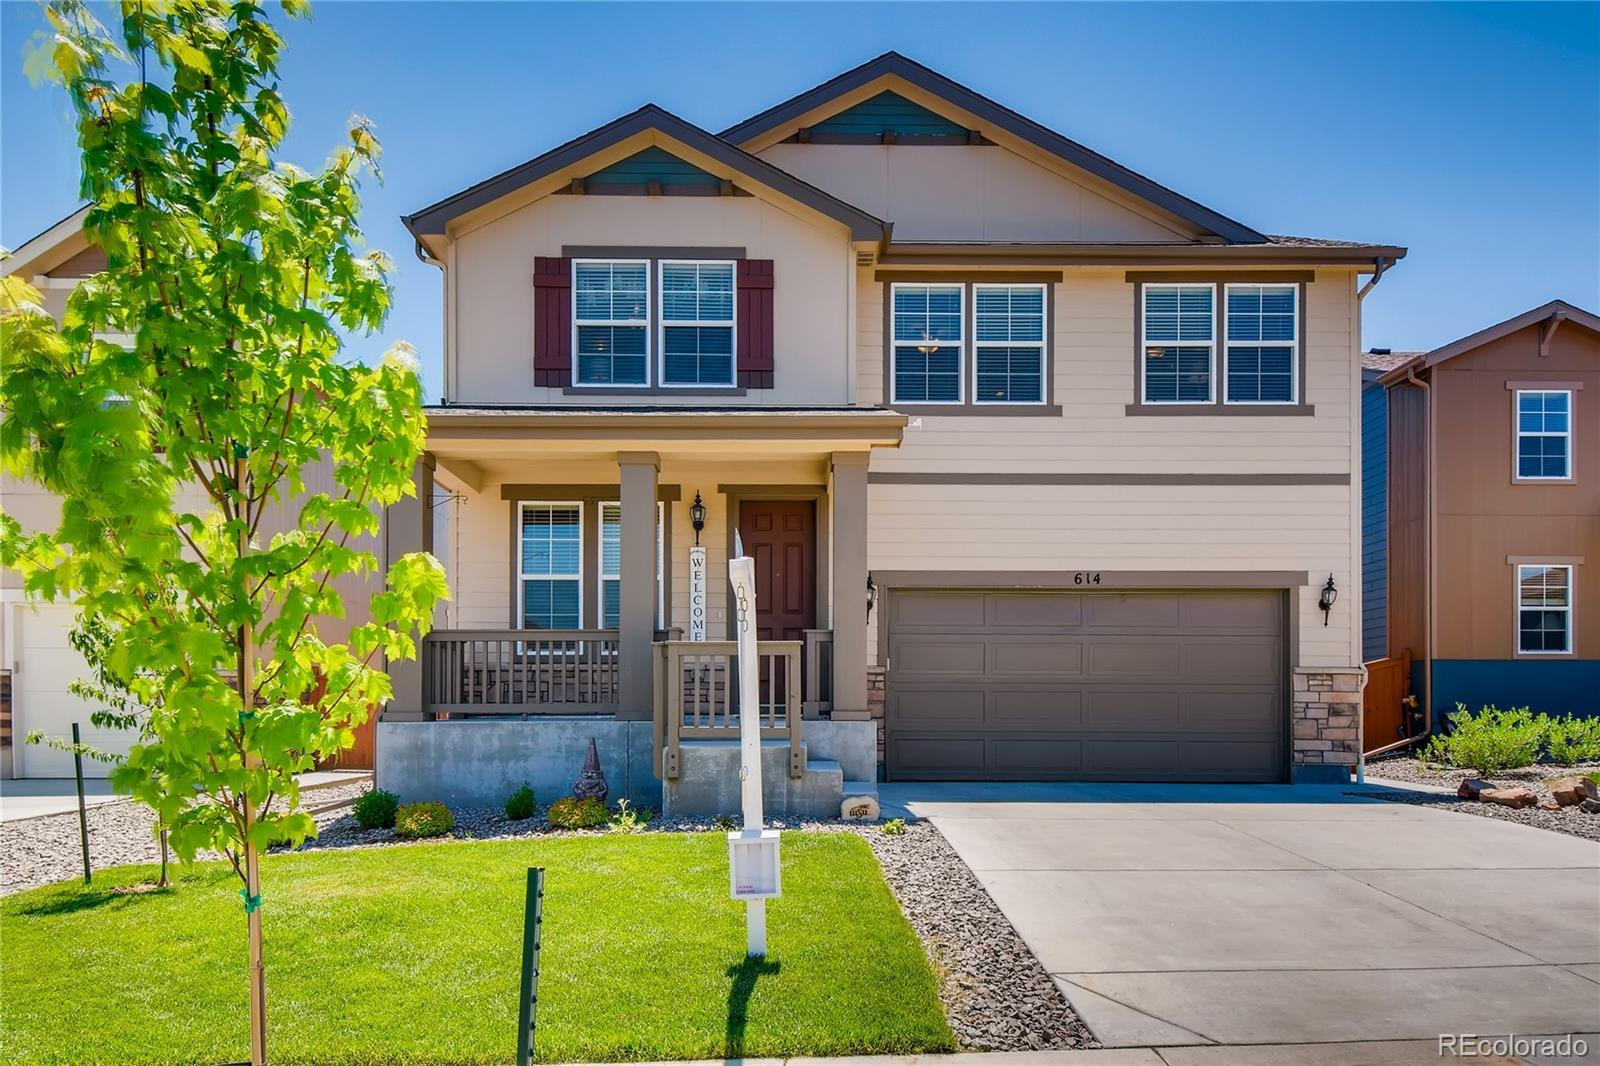 614 W 170th Place, Broomfield, CO 80023 - #: 5415218